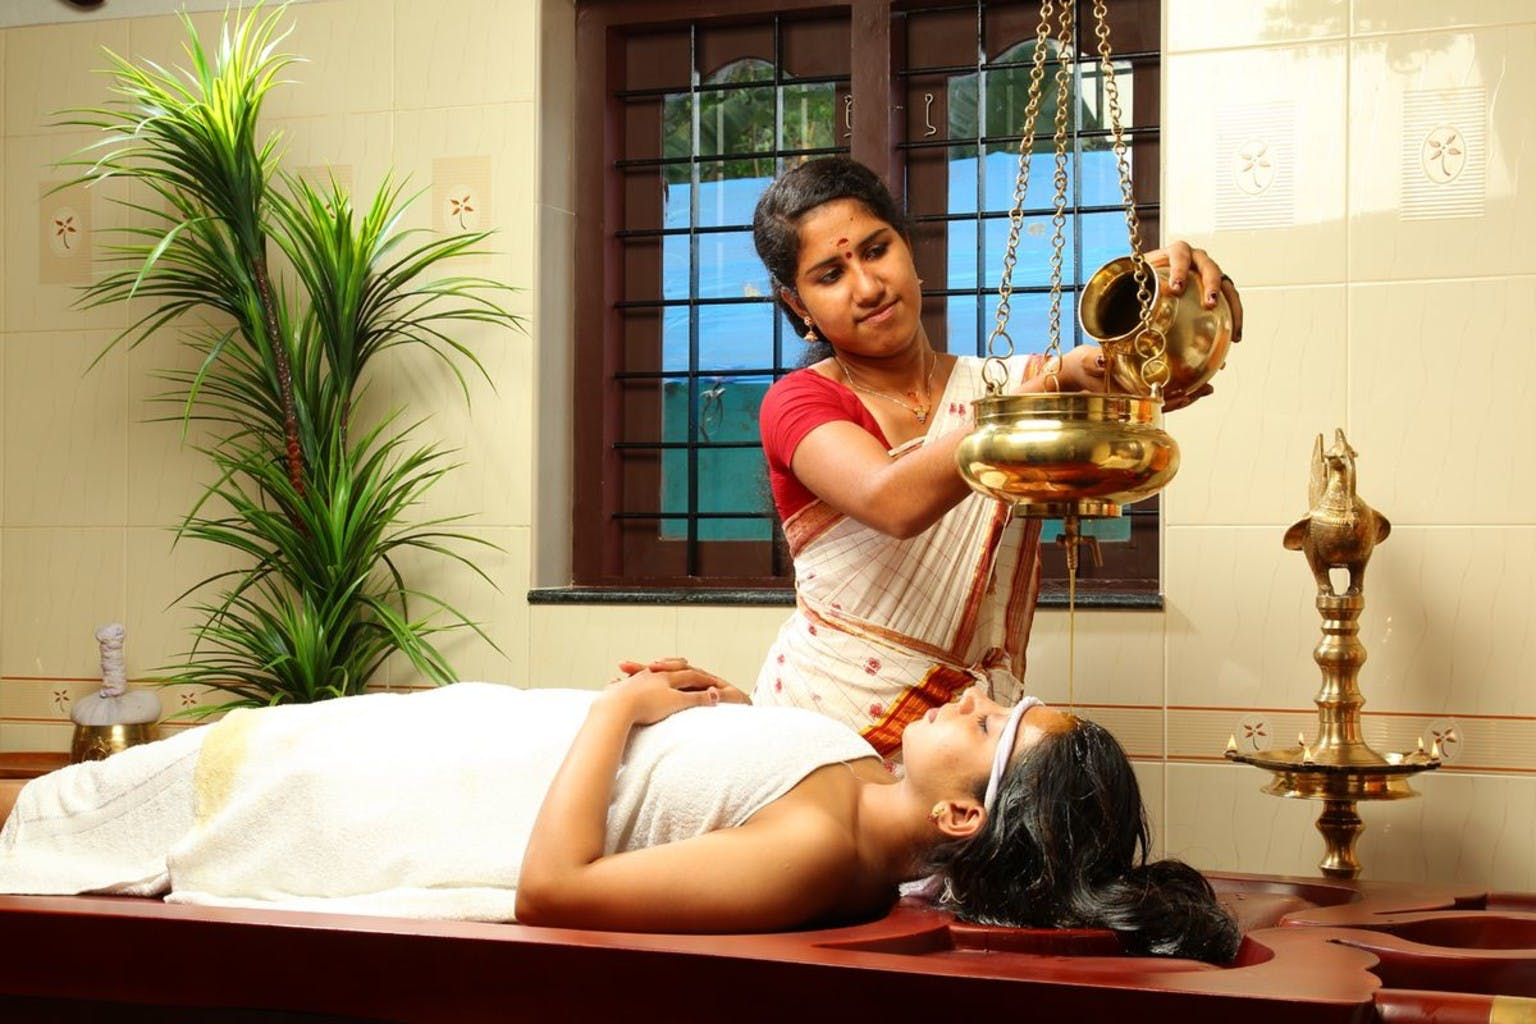 Kerala Ayurvedic massage. Kerala travels for seema. SEEMA magazine. SEEMA travels.